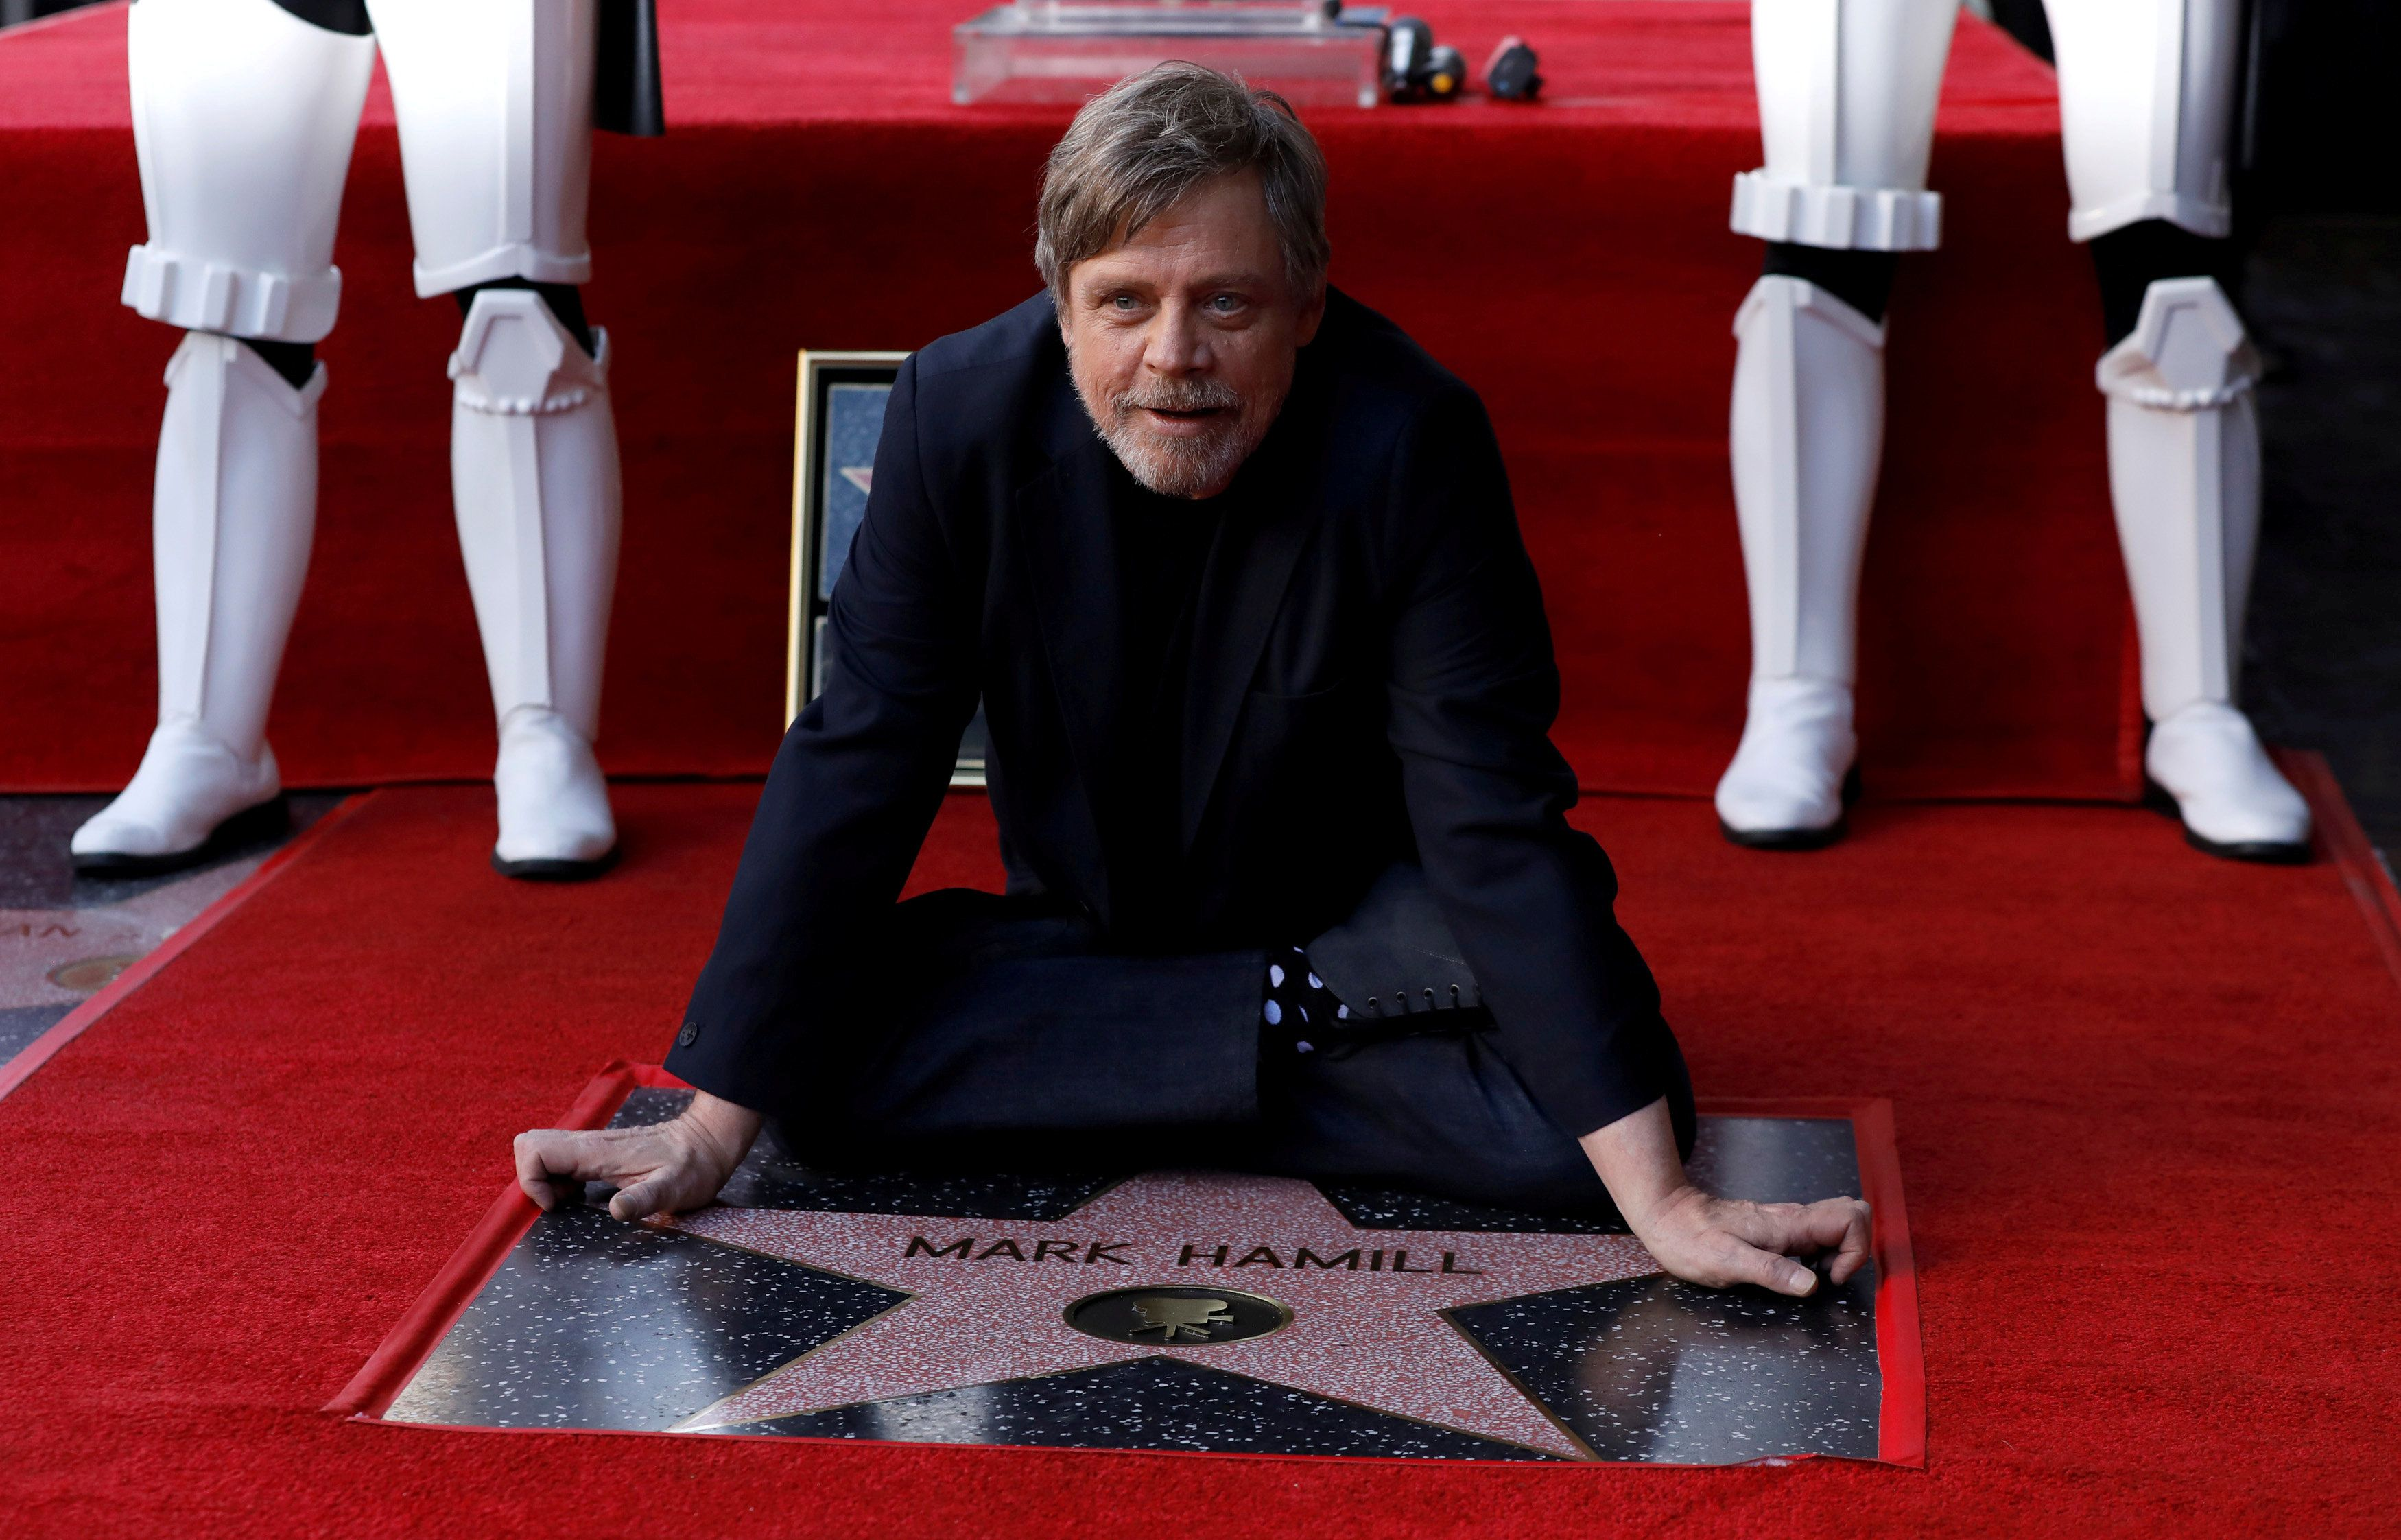 Mark Hamill Reveals Luke's Fate if George Lucas Still Ran Star Wars